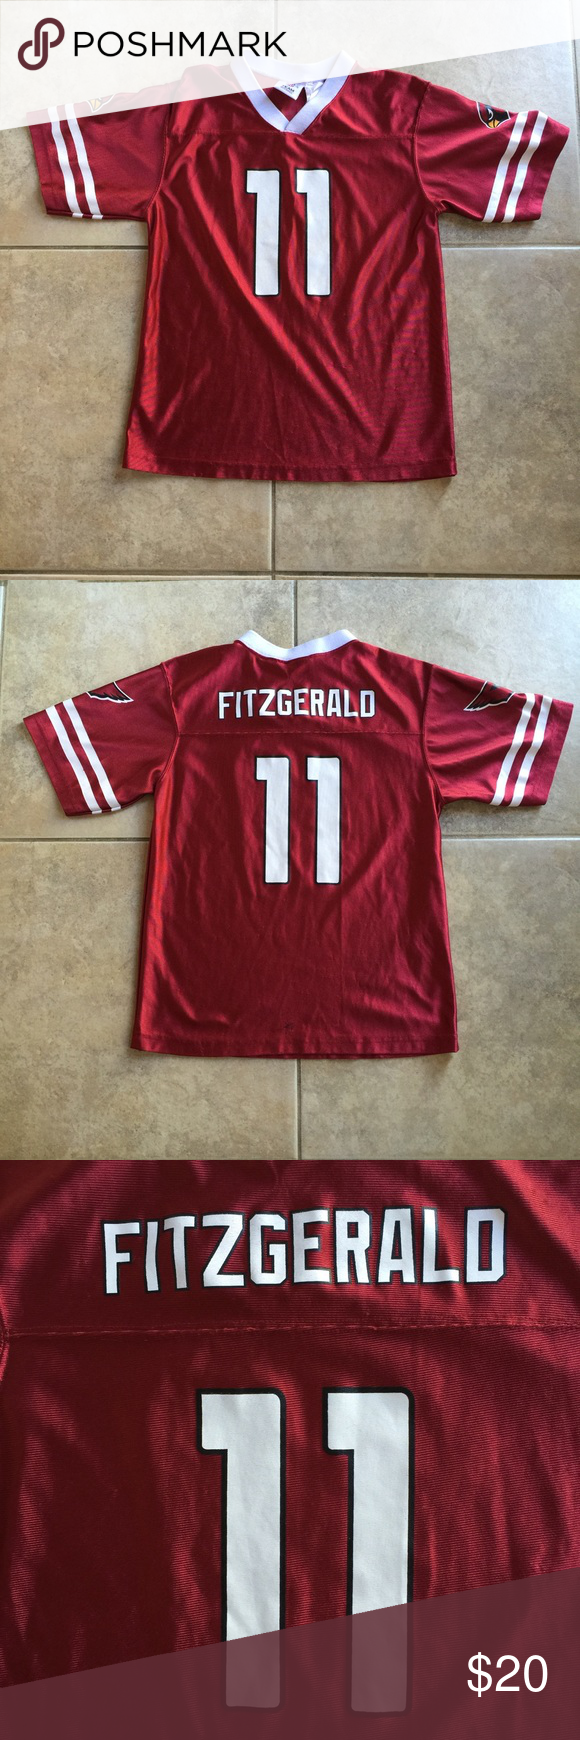 7f257e4d3 ... switzerland larry fitzgerald arizona cardinals youth jersey mint  condition. size youth kids large 14 16